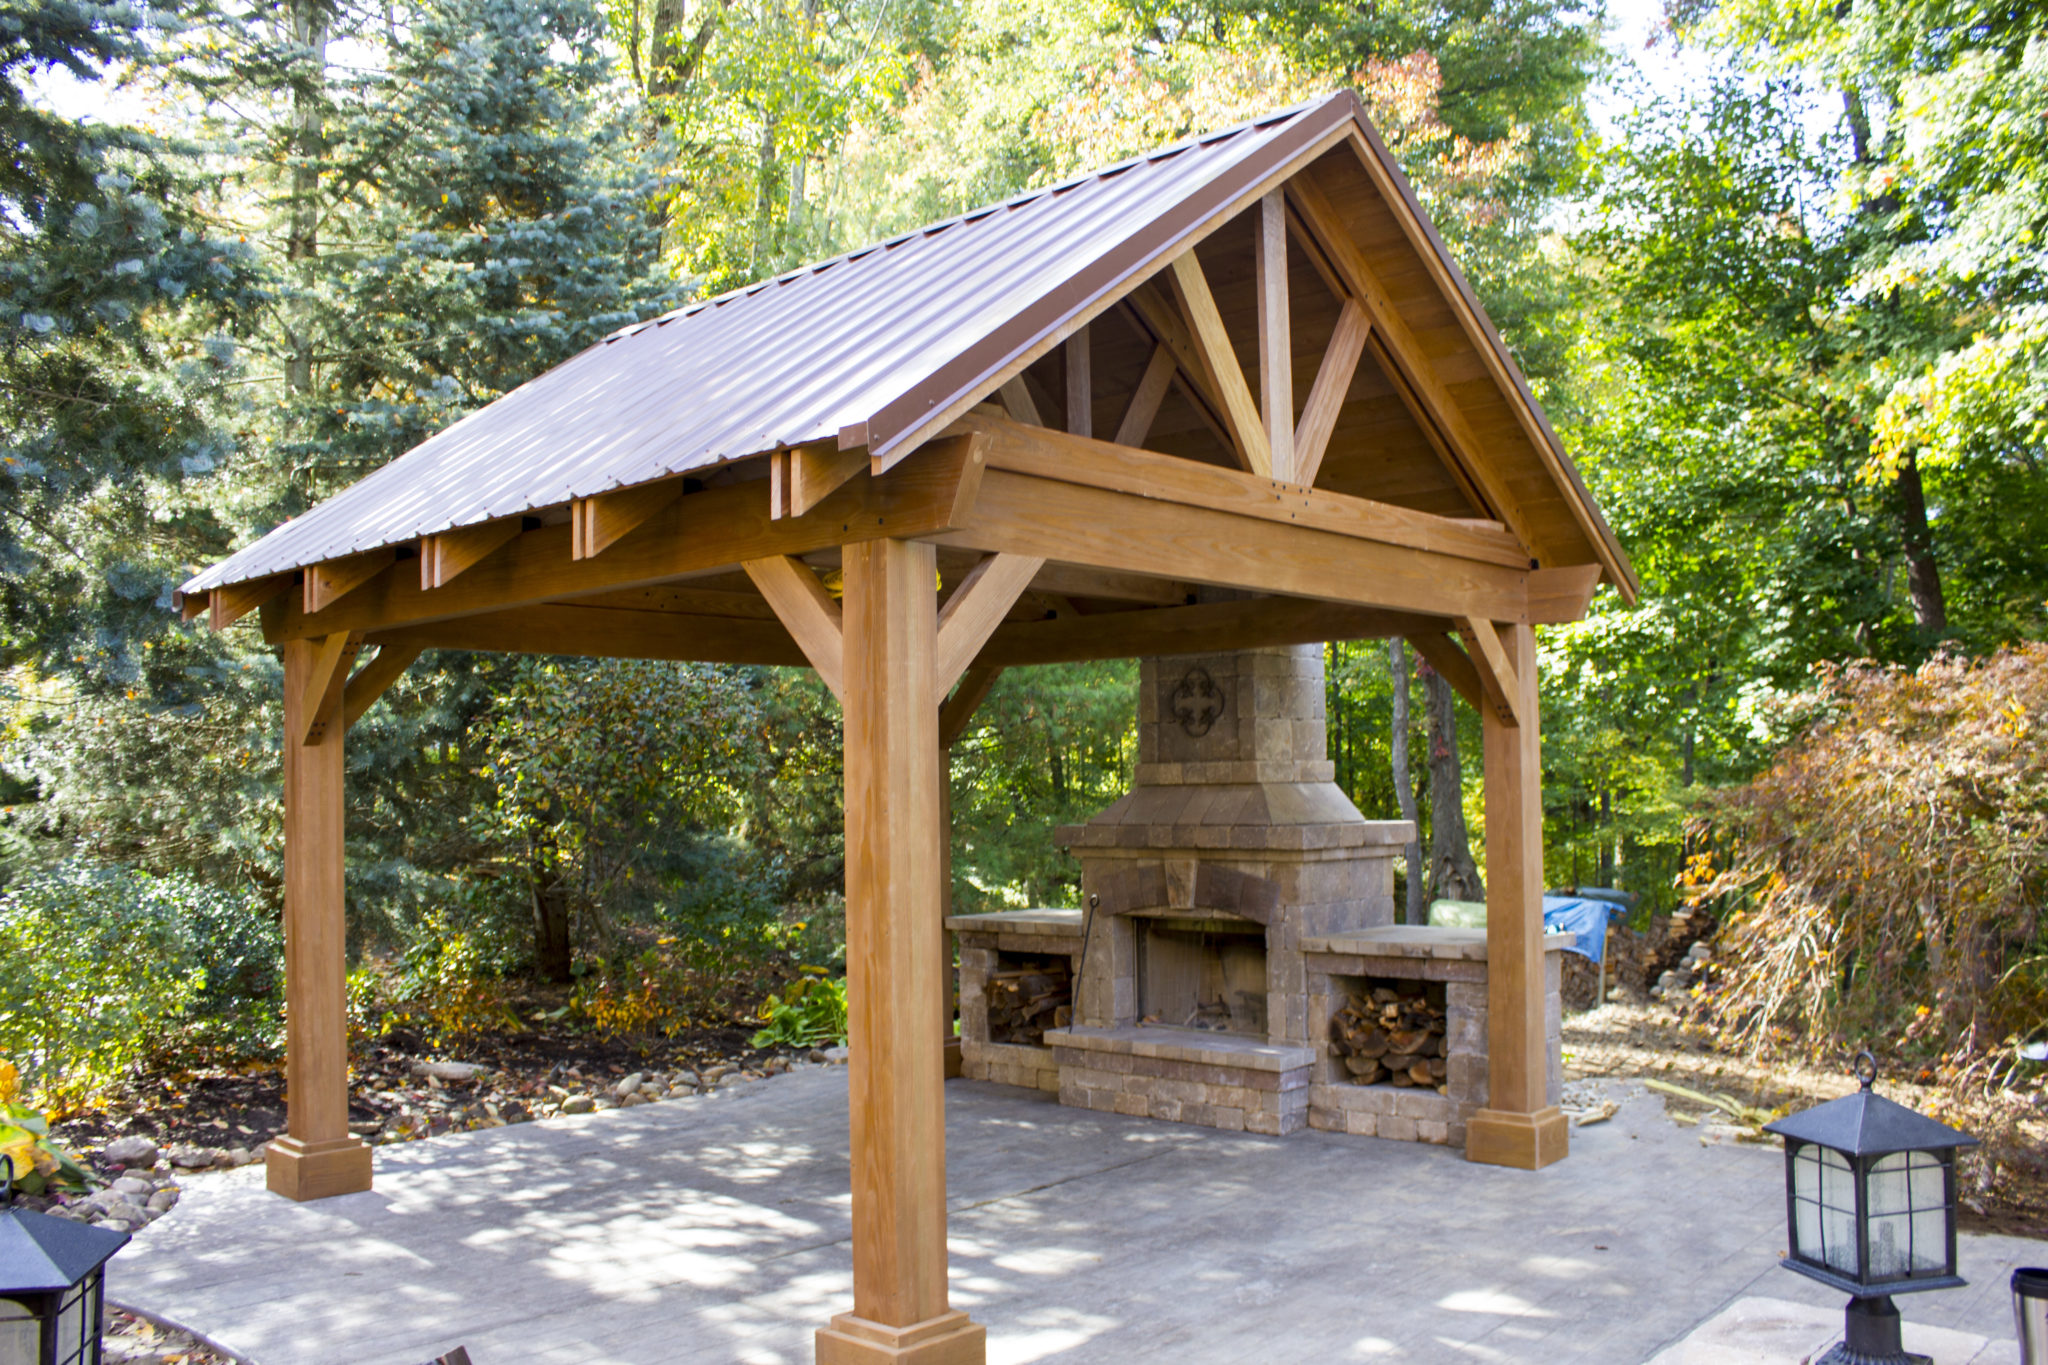 Decks and patios mock property services for Outdoor gazebo plans with fireplace